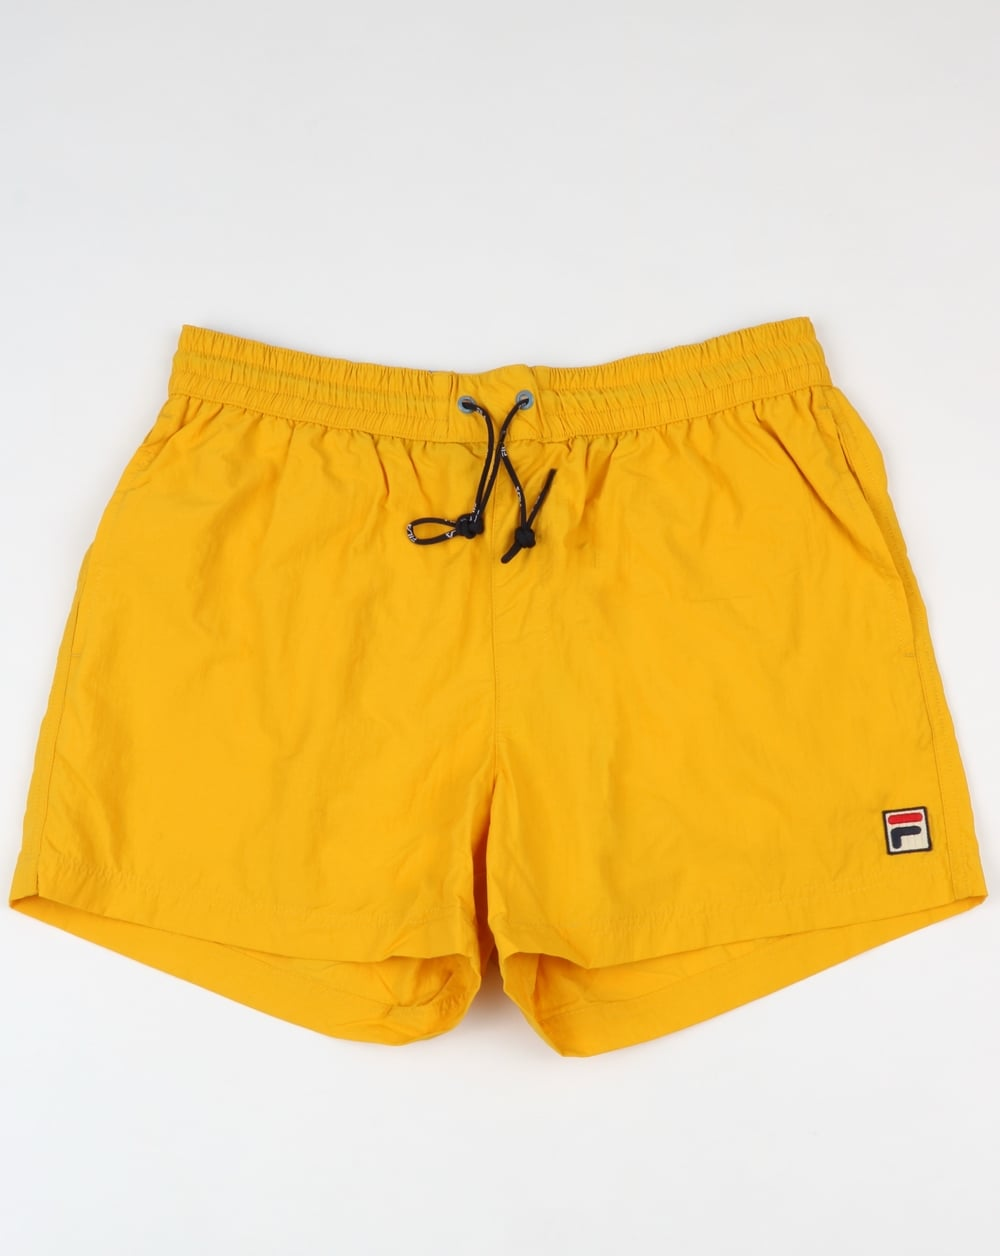 46f8e21294b1 Fila Vintage Artoni Swim Shorts Lemon Chrome,beach,swimmers,mens